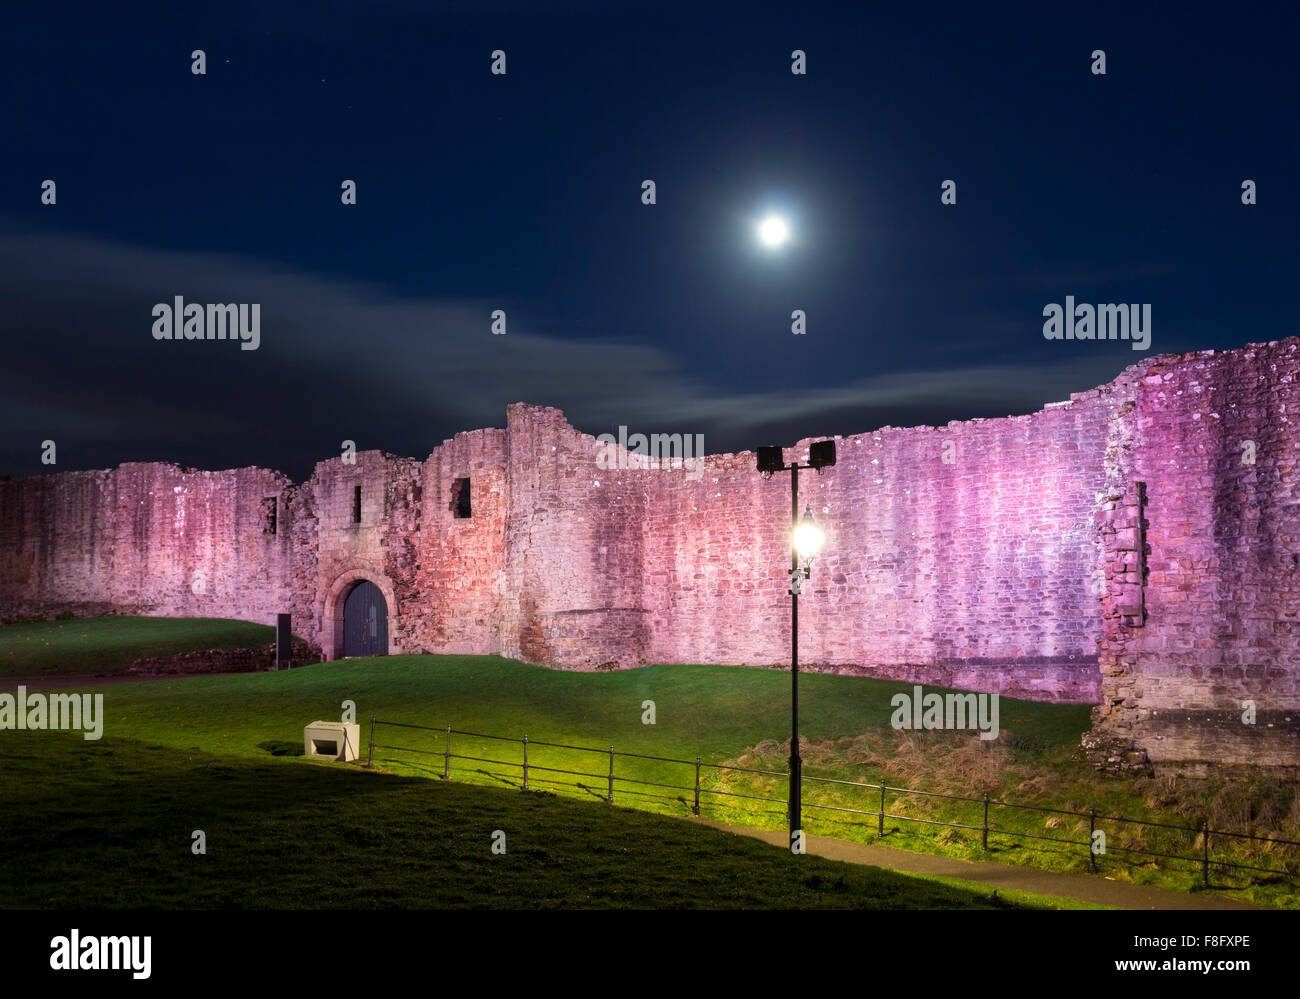 The Walls of Barnard Castle Illuminated by Colourful LED Lighting, Teesdale County Durham UK - Stock Image